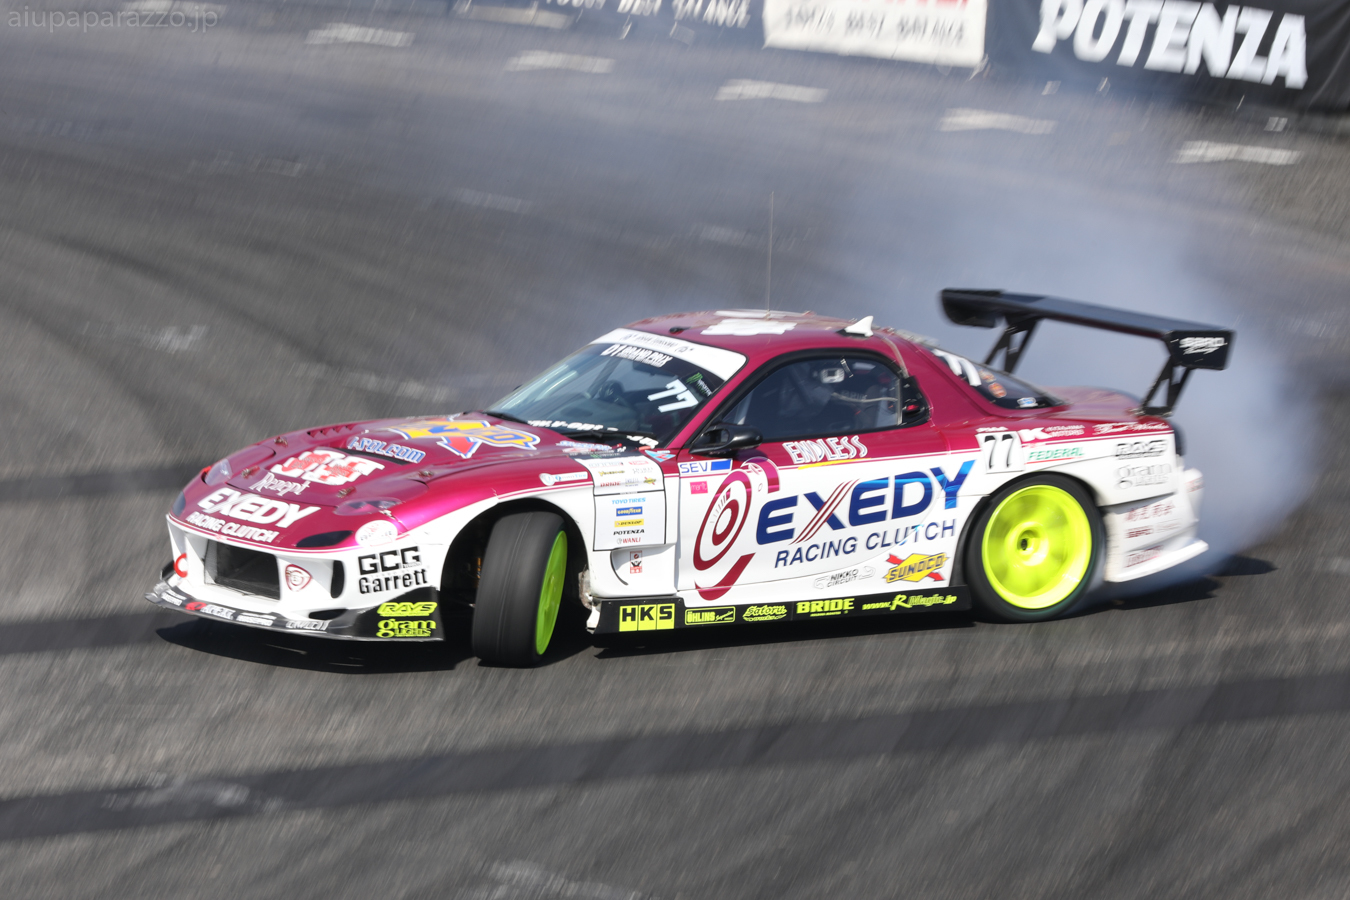 d1gp_tan2016lap3-24.jpg